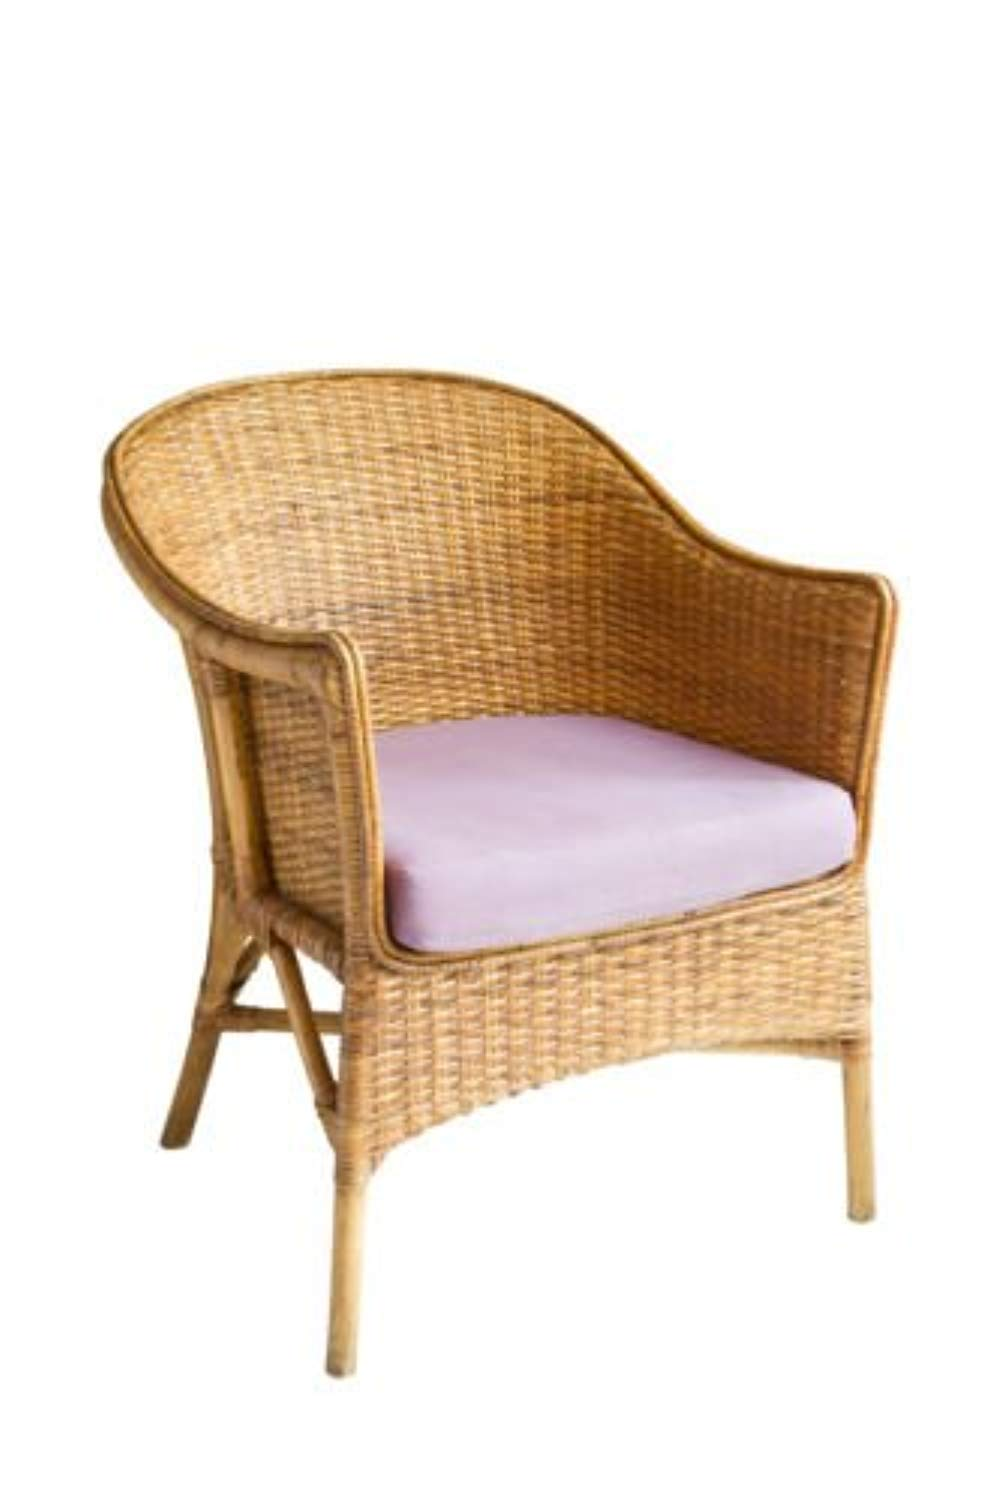 IRA Vintage Boho Peacock Lovehearts Wicker Rattan Chair (Brown) - IRA Furniture